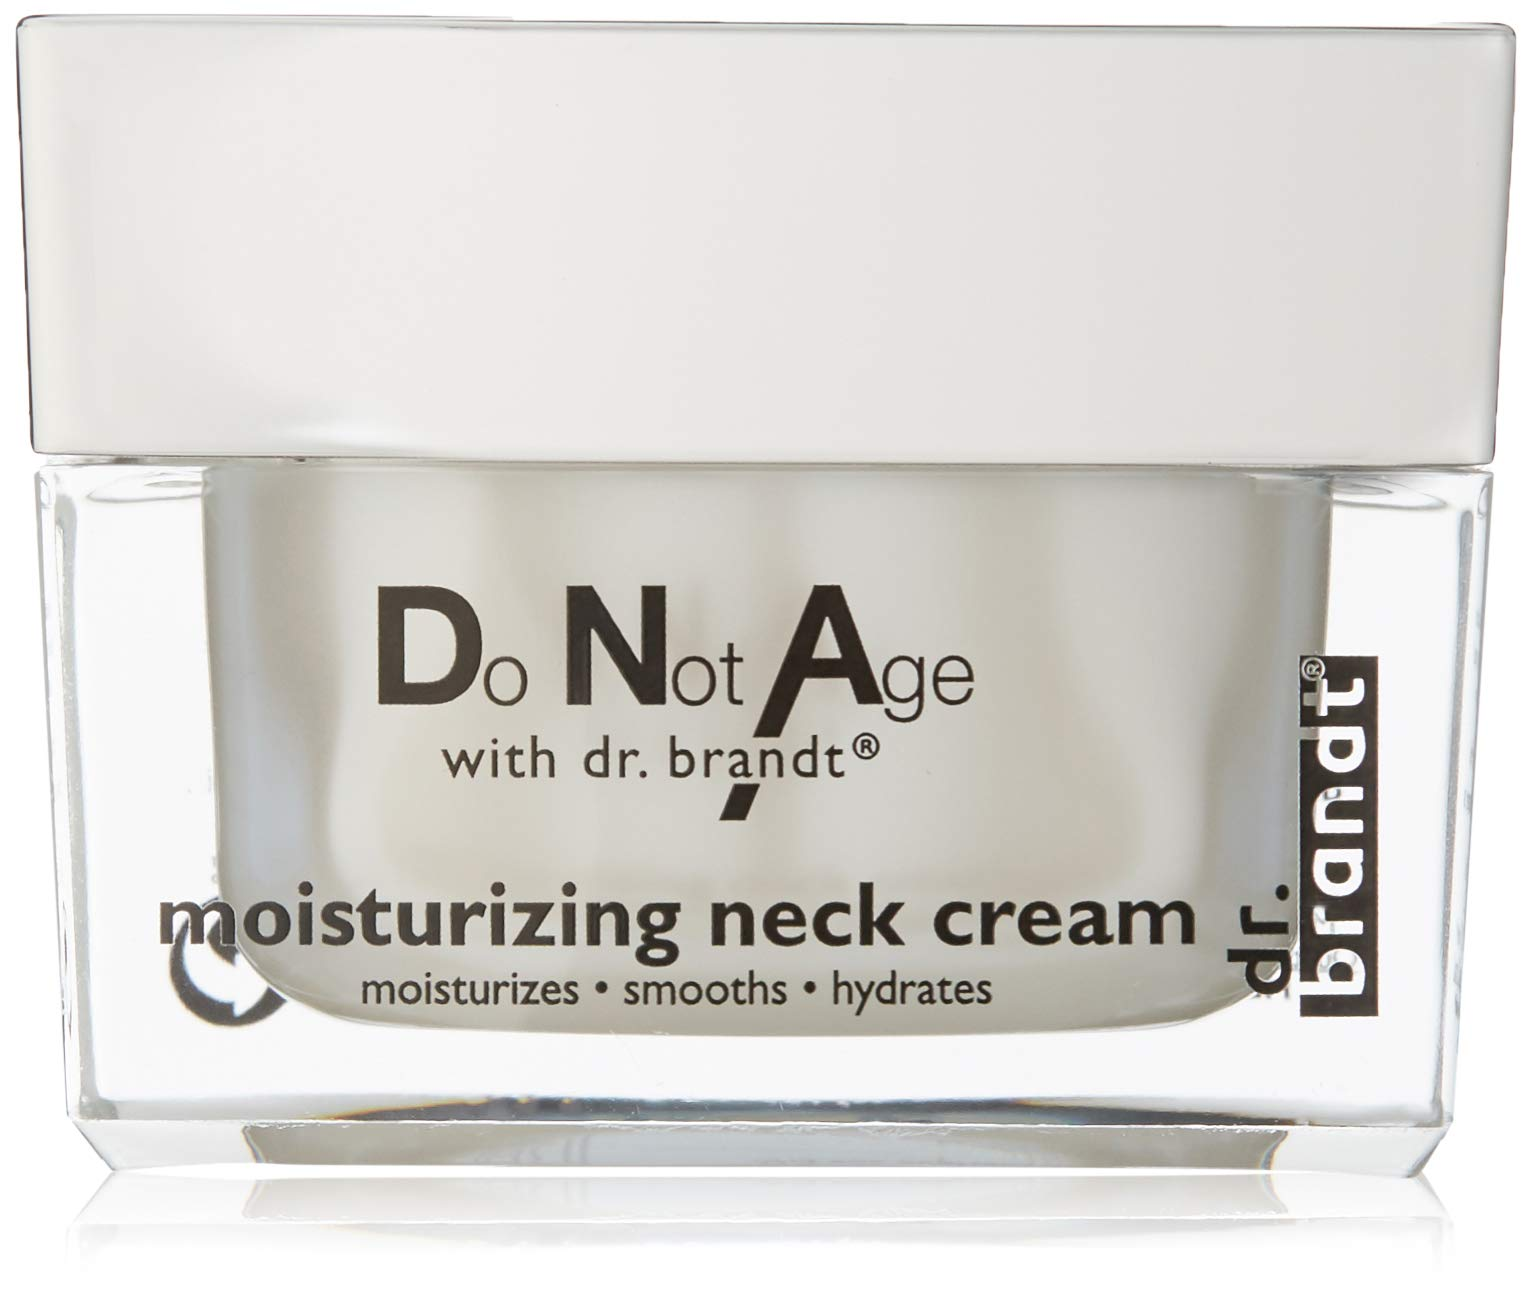 Do Not Age With Dr. Brandt  Moisturizing Neck Cream